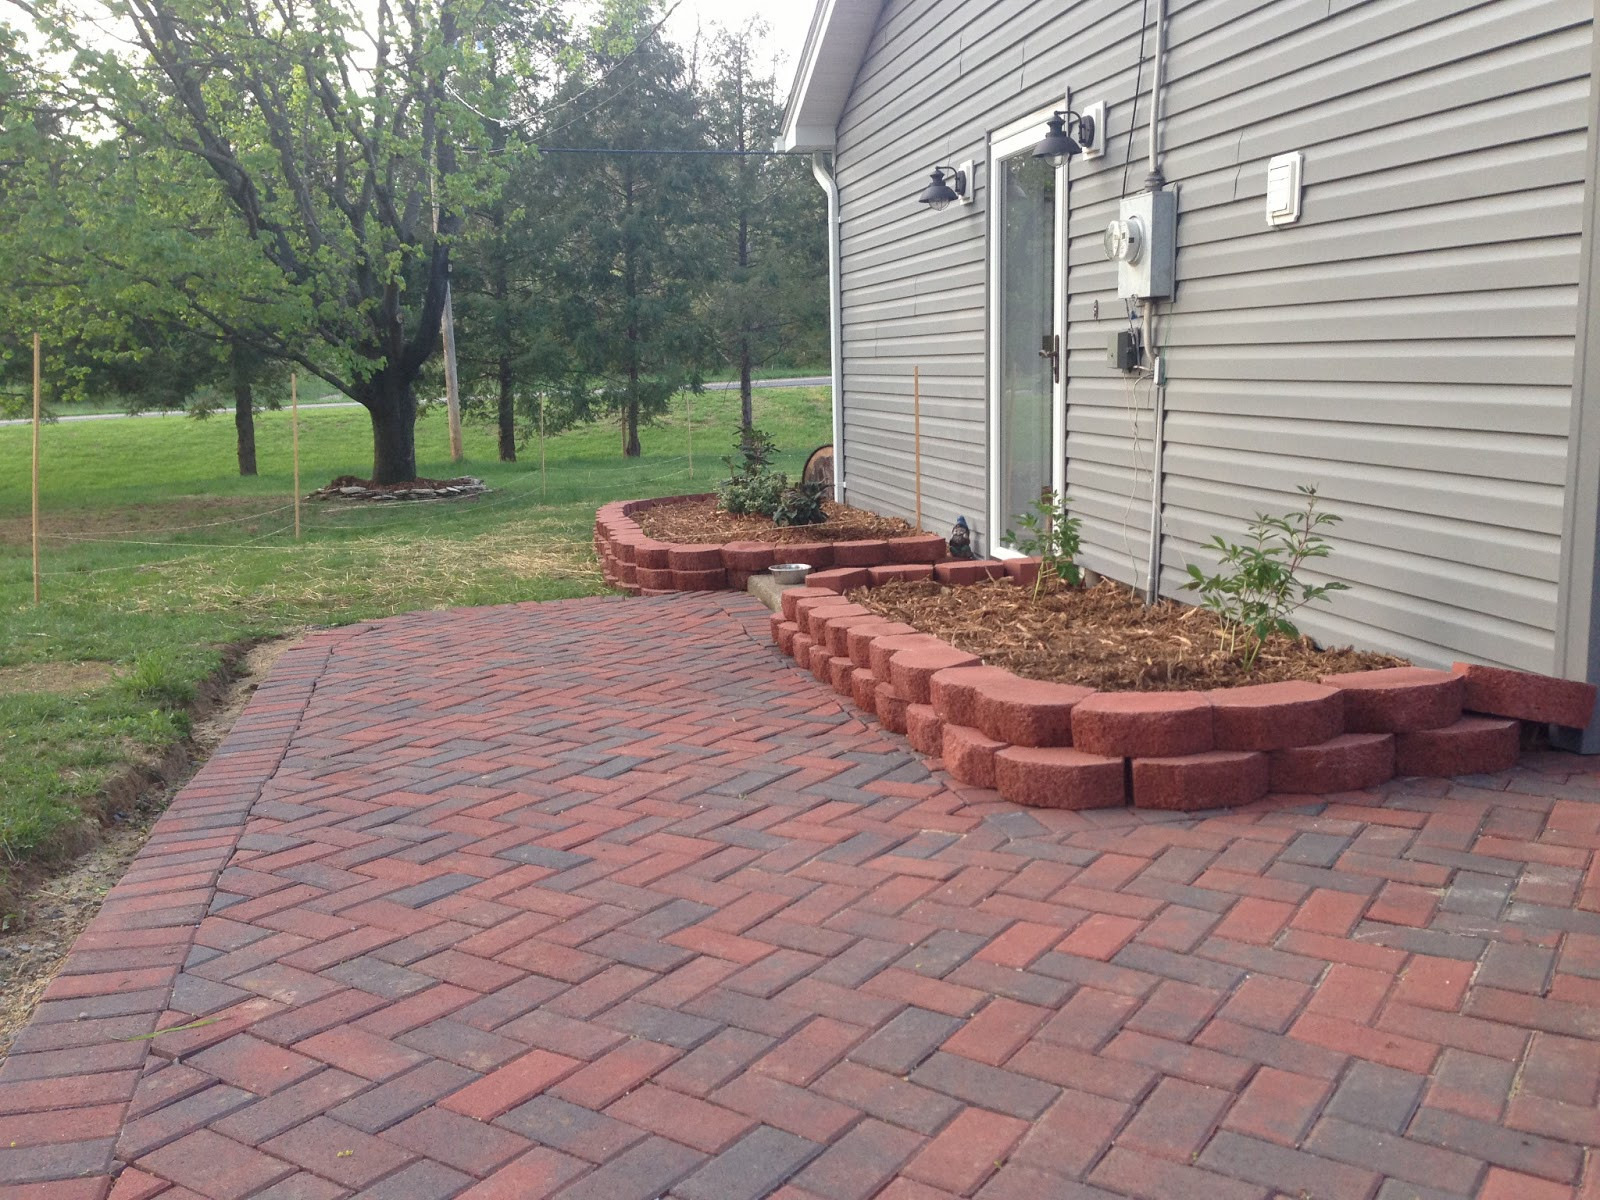 Best ideas about DIY Brick Patios . Save or Pin Newlywed Nesters DIY Paver Patio Now.